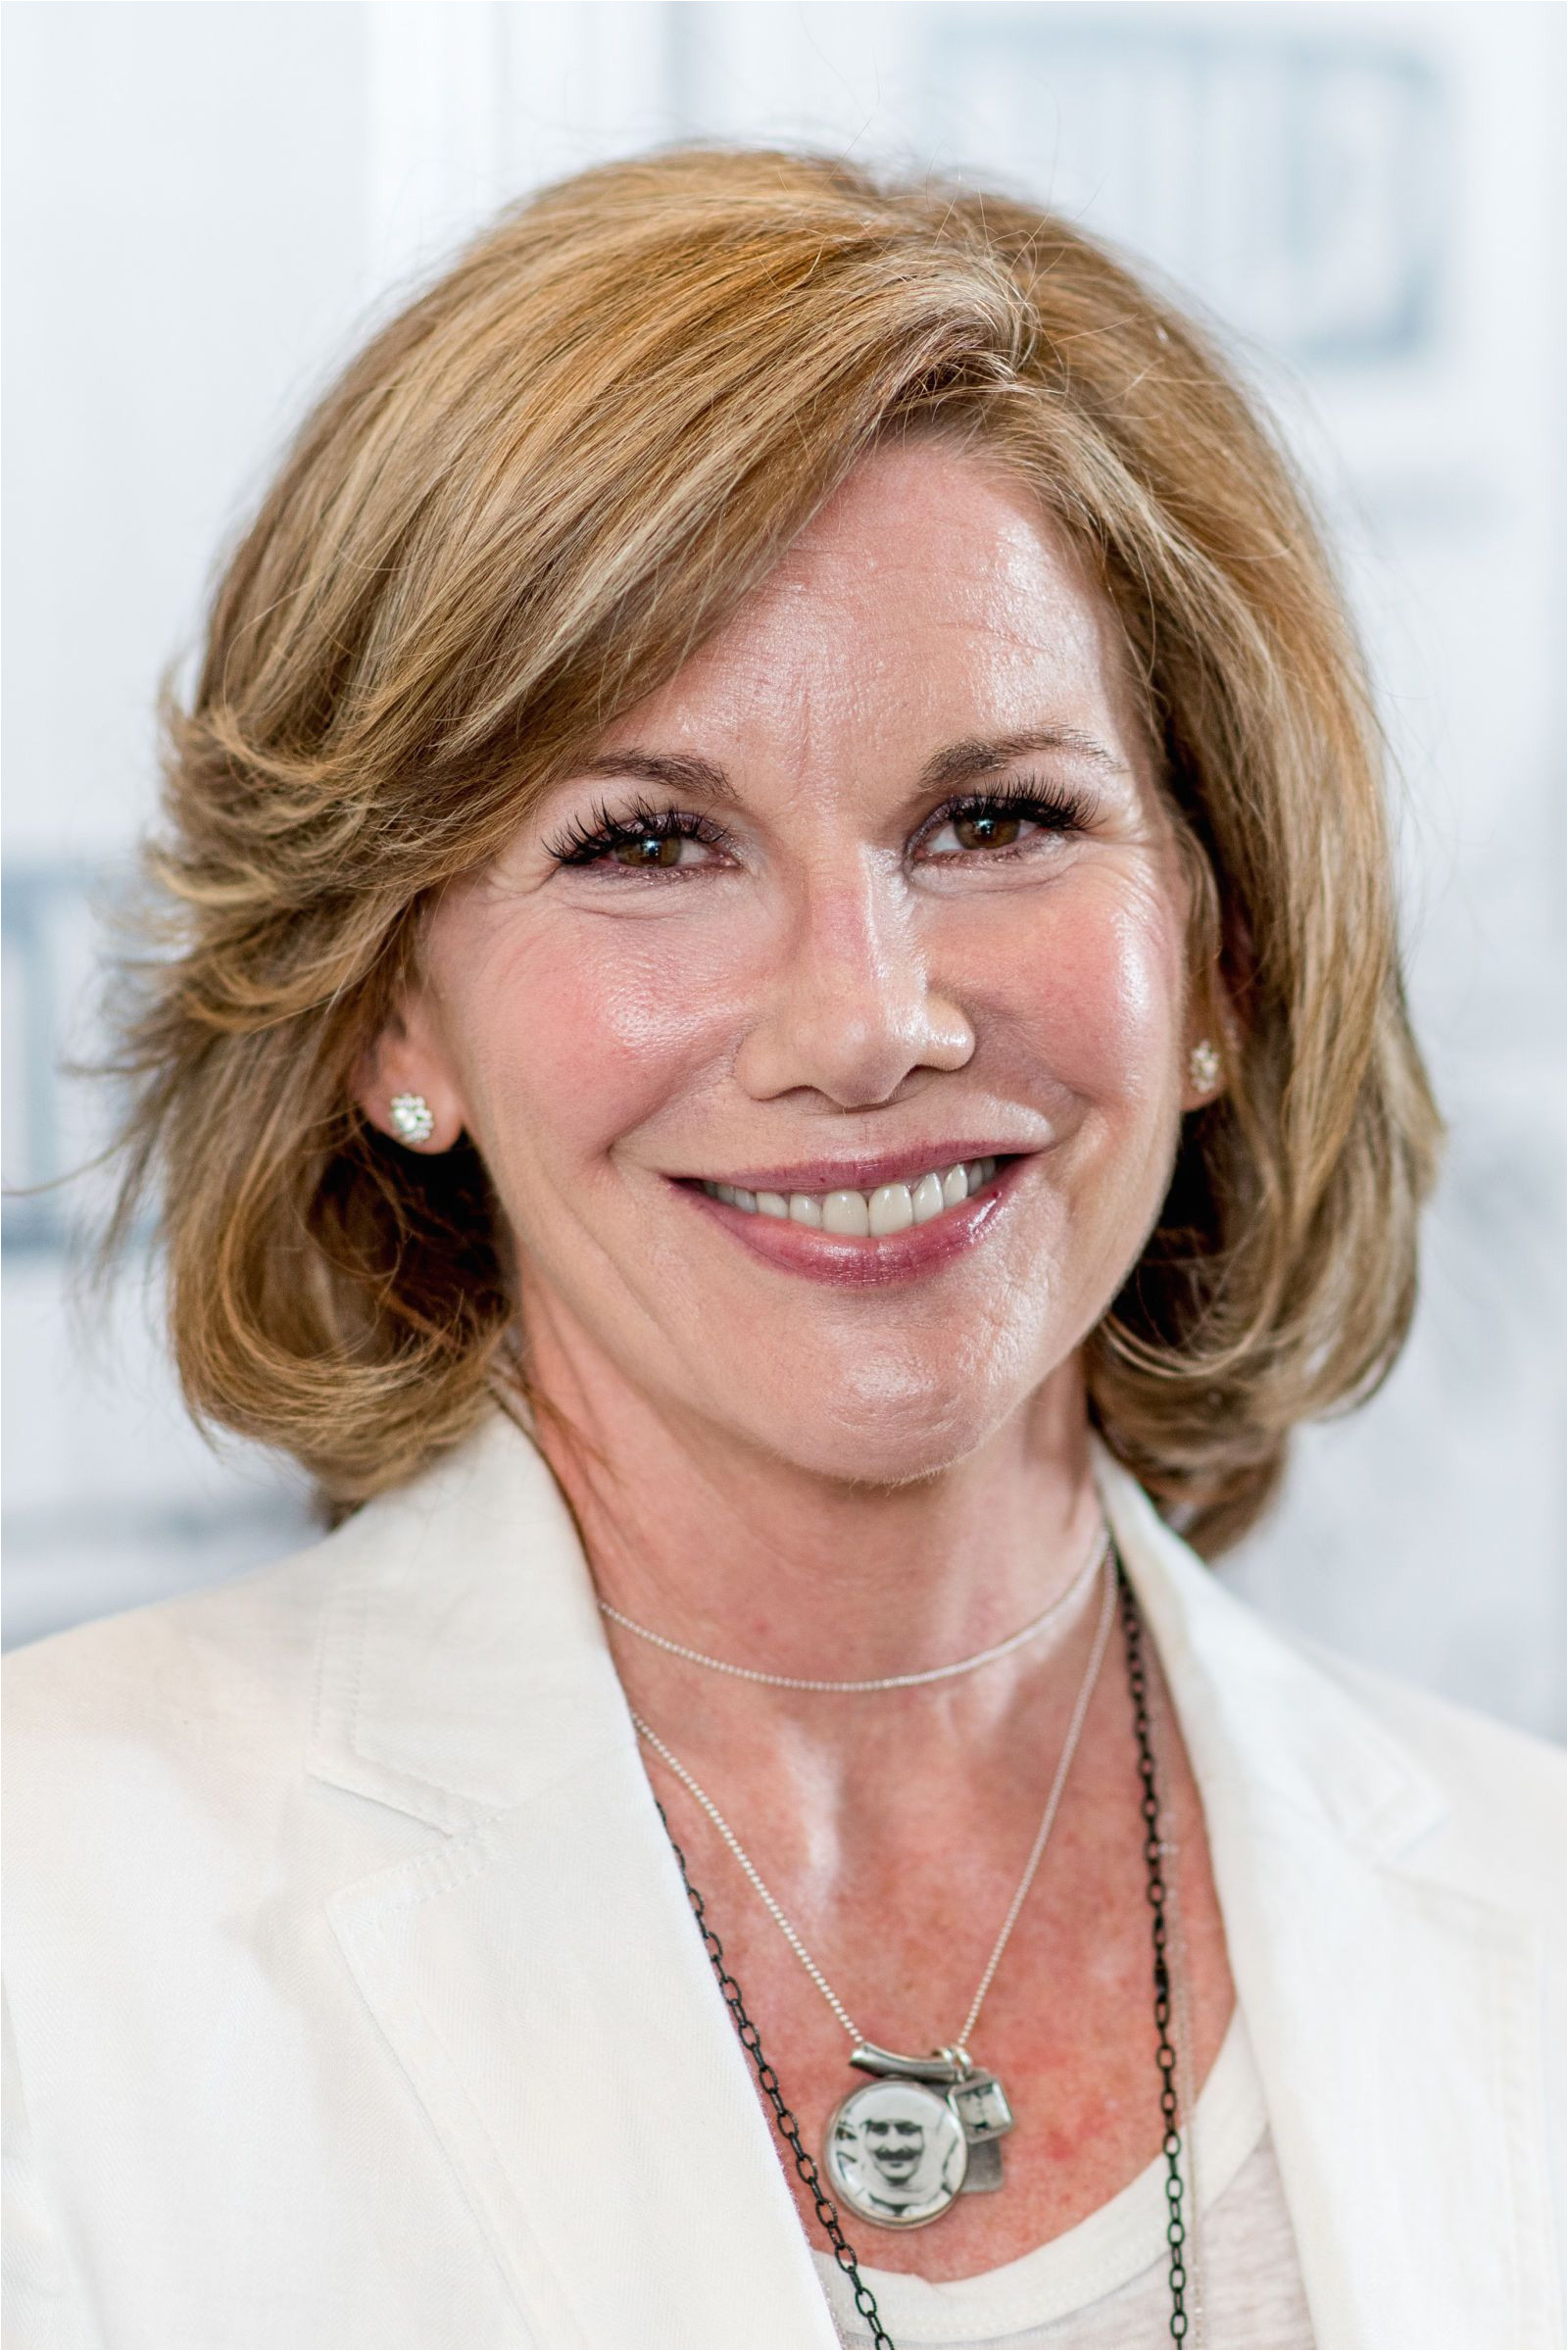 Feathered Hairstyles Long Hair shag hairstyles over 40 Women Hairstyles Over 60 Jane Fonda